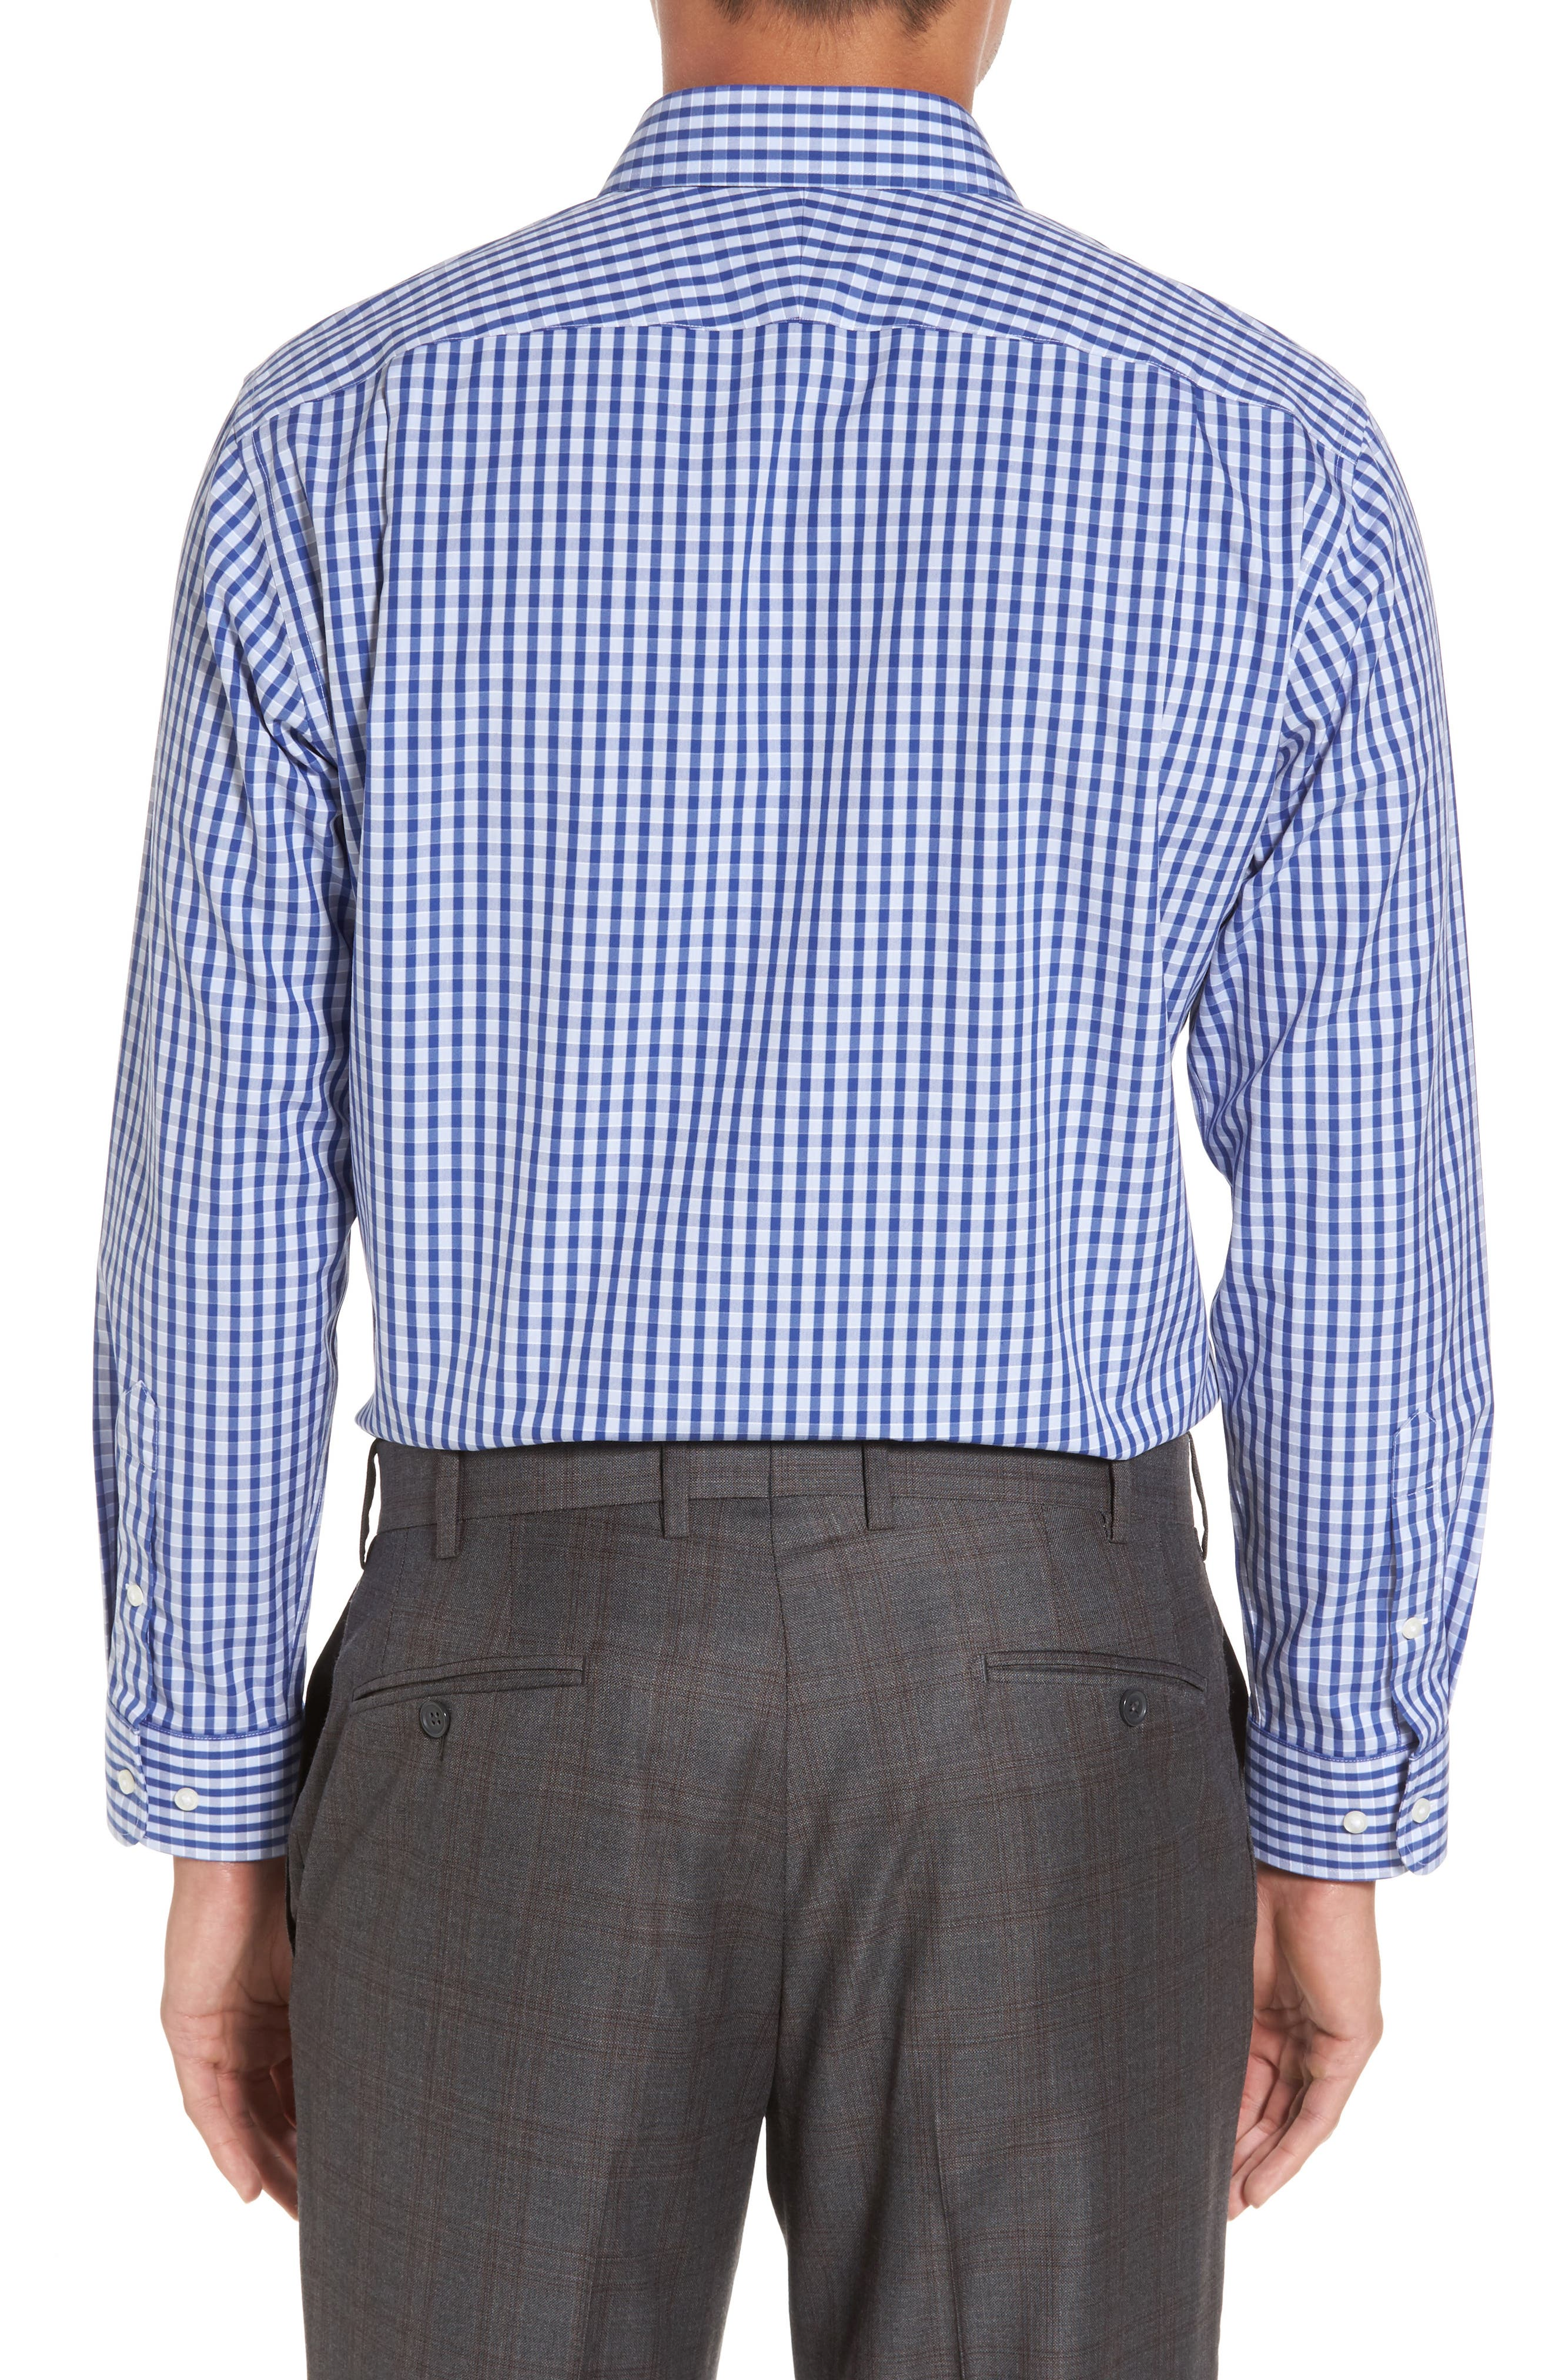 Smartcare<sup>™</sup> Trim Fit Check Dress Shirt,                             Alternate thumbnail 3, color,                             Blue Marine